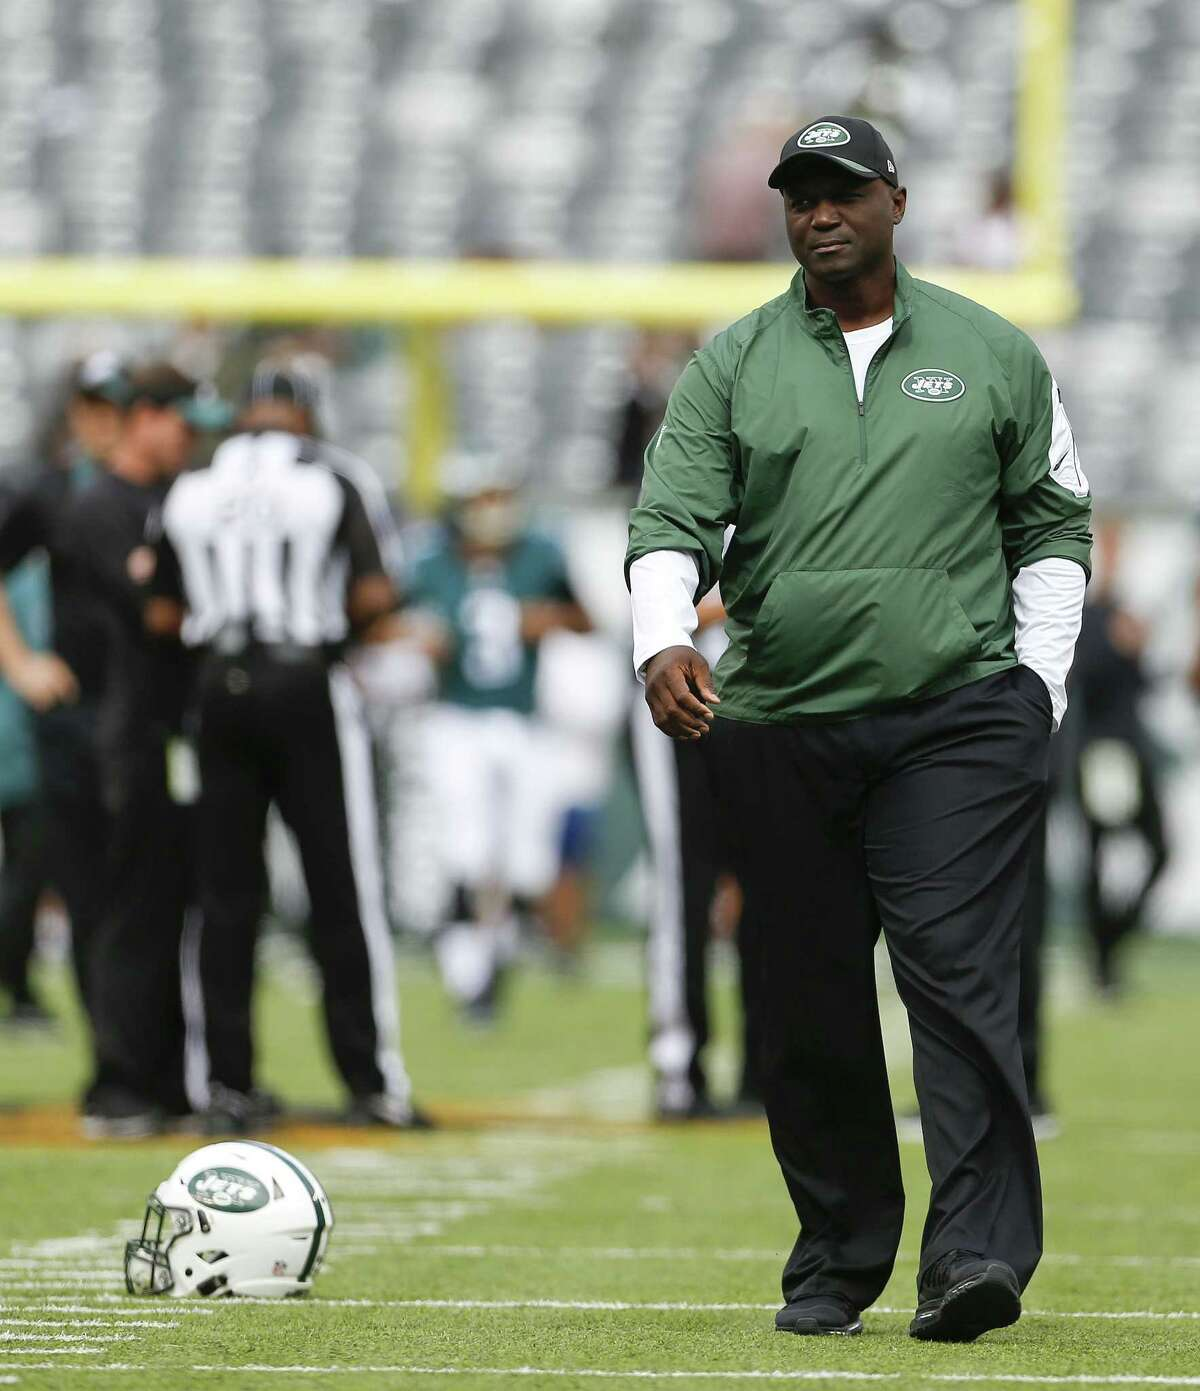 Jets head coach Todd Bowles.